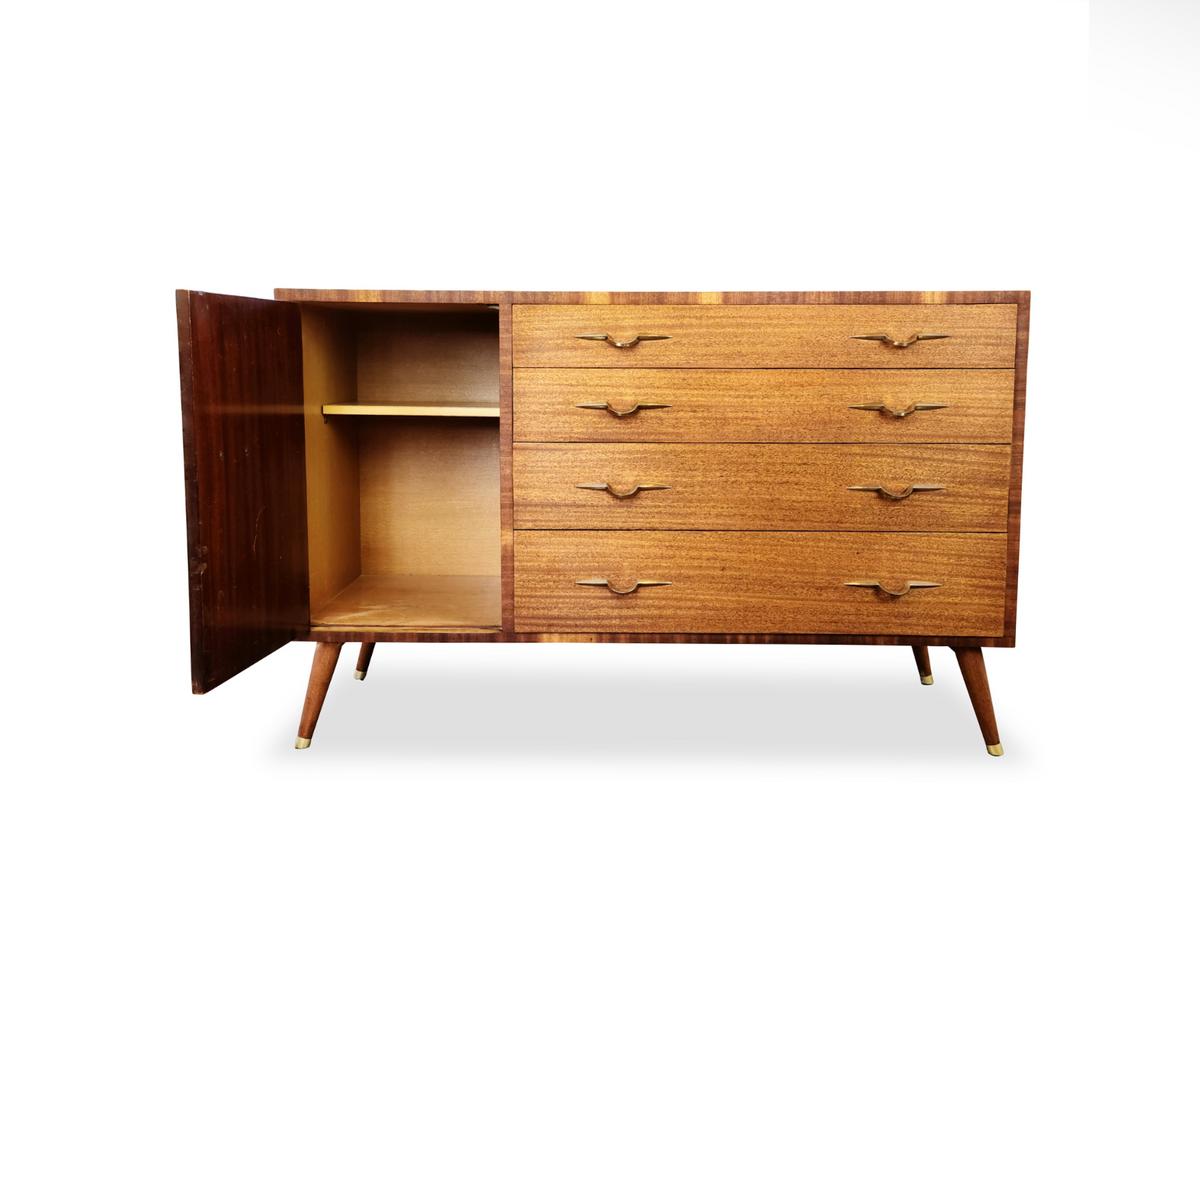 Mahogany and Brass Sideboard